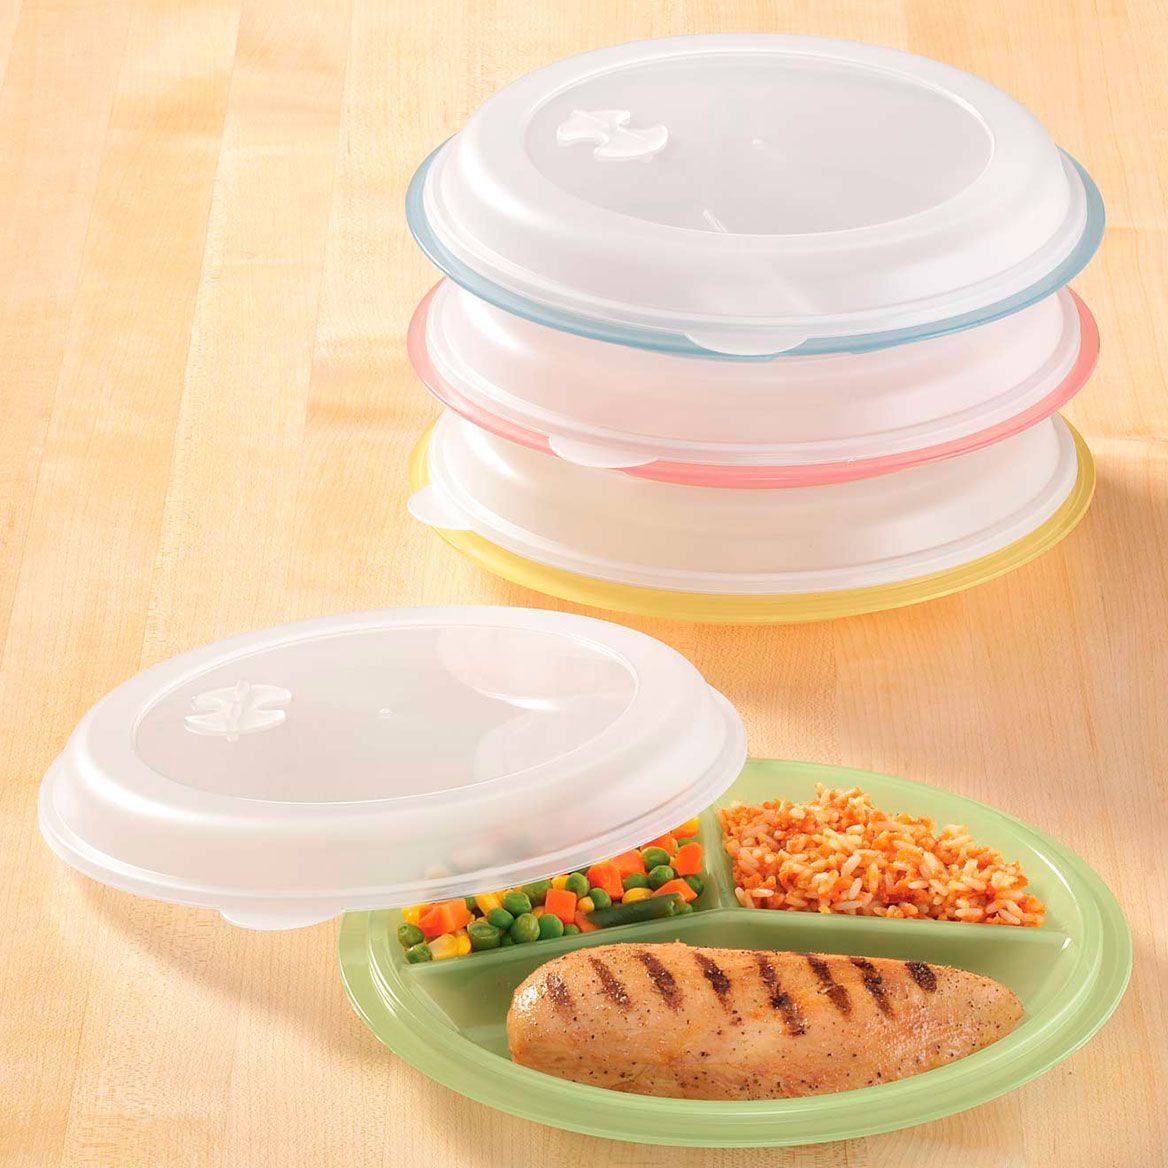 Divided Plates And Food Storage Containers - Set Of 4-303973